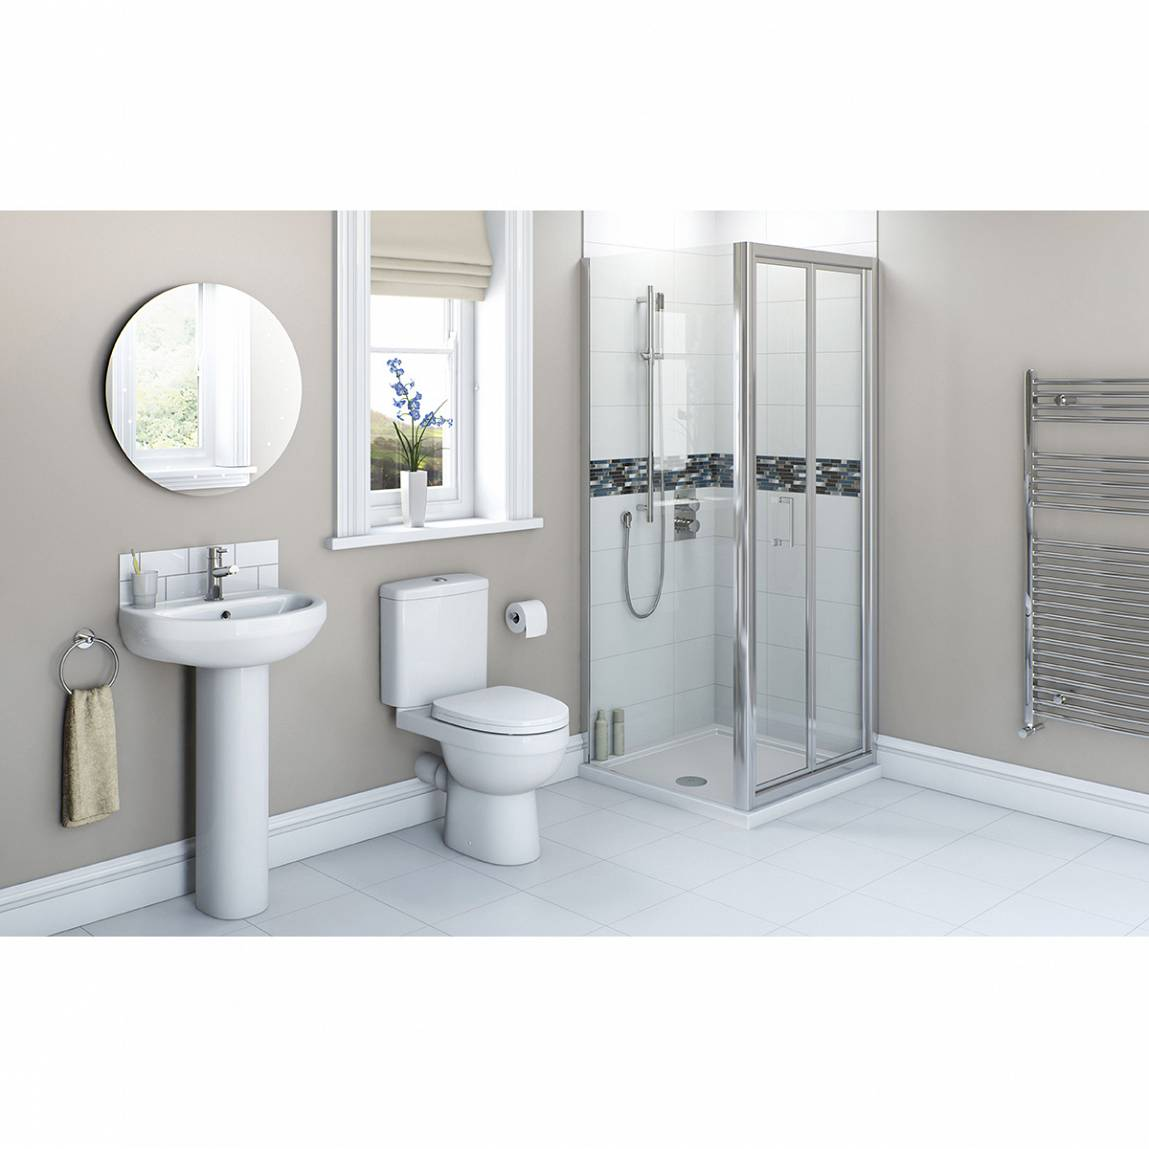 Image of Energy Bathroom set with Bifold Enclosure 800